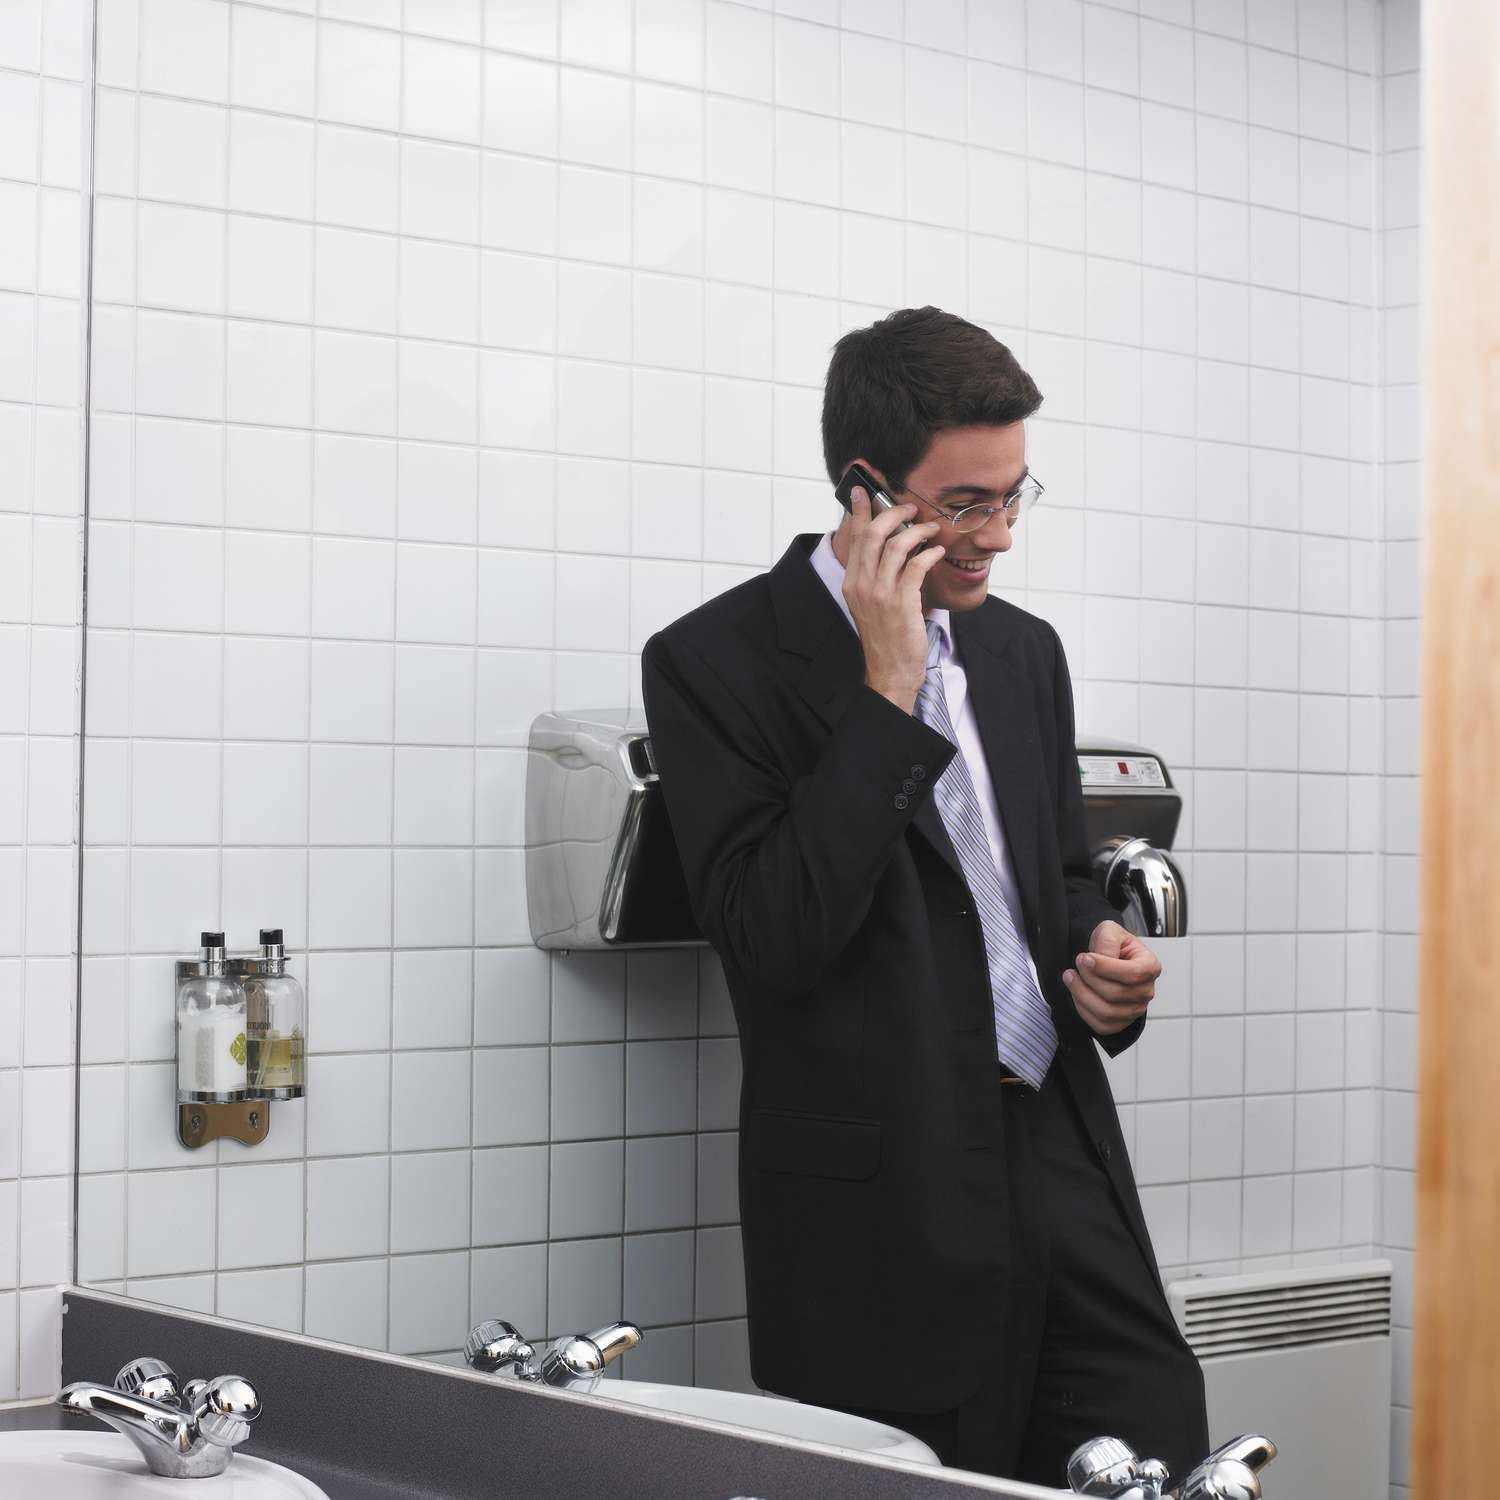 Man talking on his cell phone in the workplace bathroom.